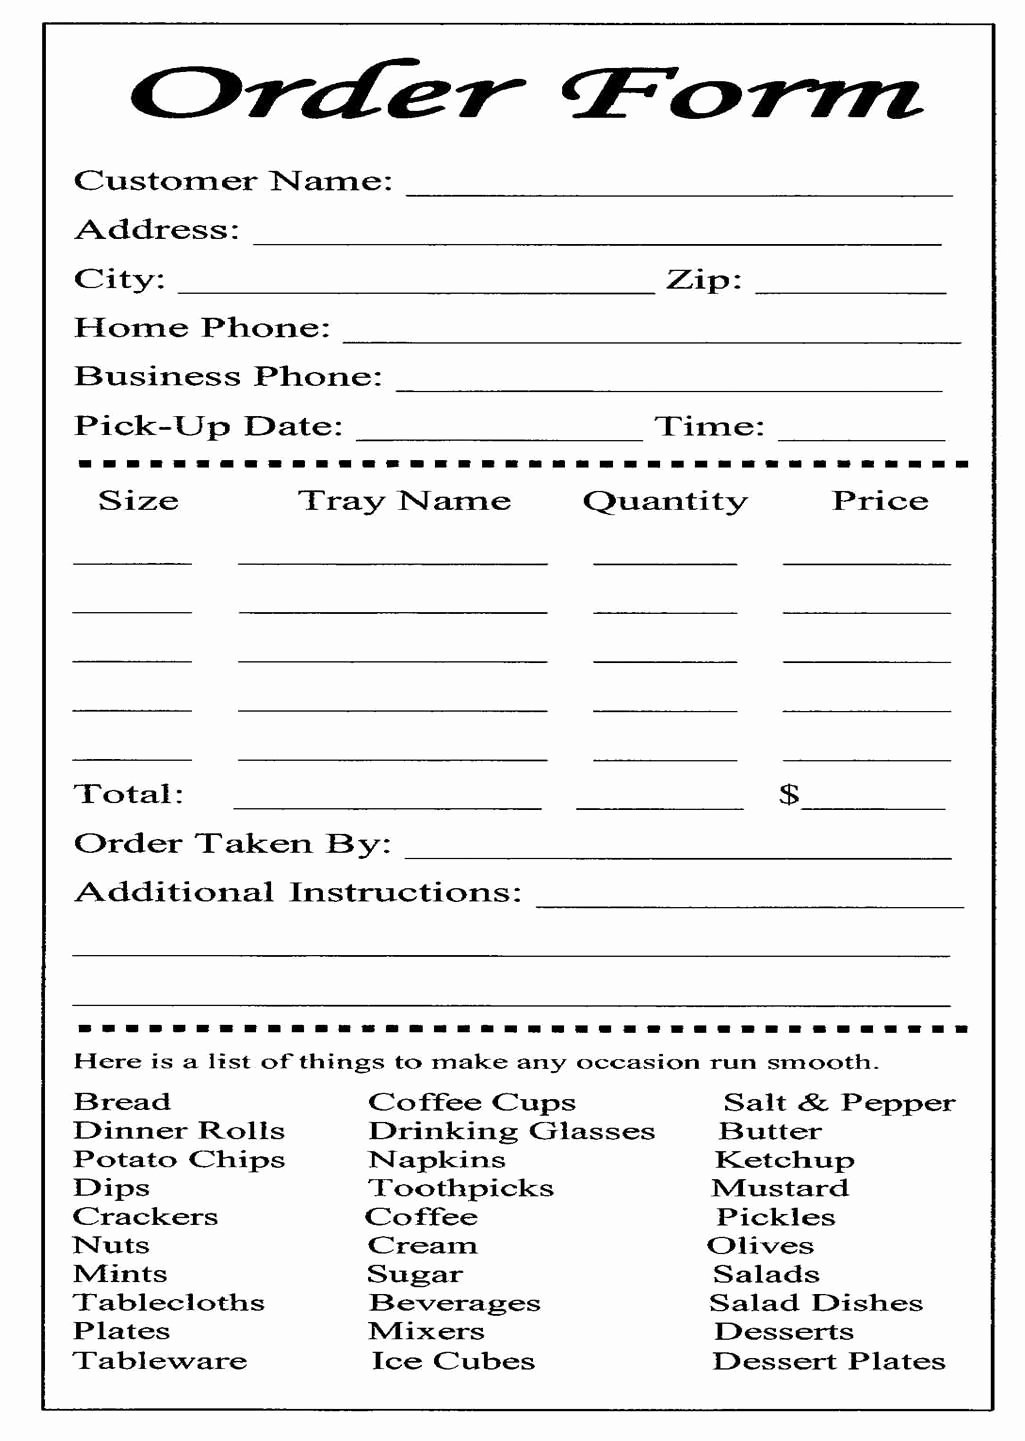 Cake order form Template Word Beautiful Cake Ball order form Templates Free